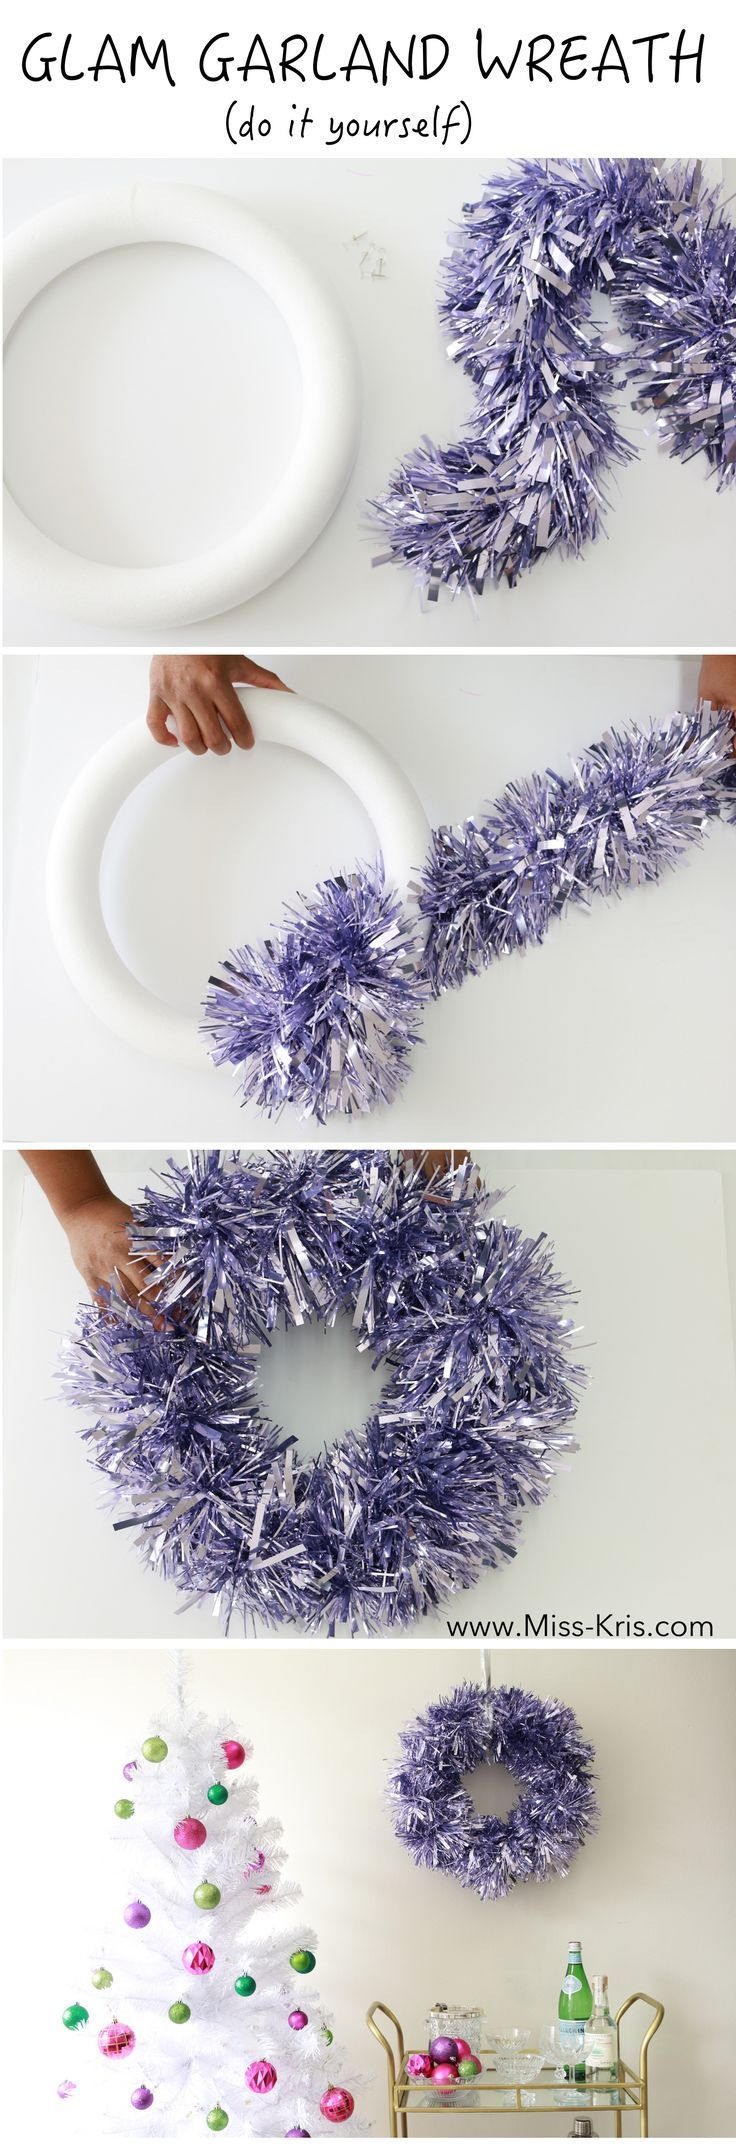 23 best christmas decor images on pinterest christmas bowl diy christmas wreath by miss kris full post here solutioingenieria Gallery